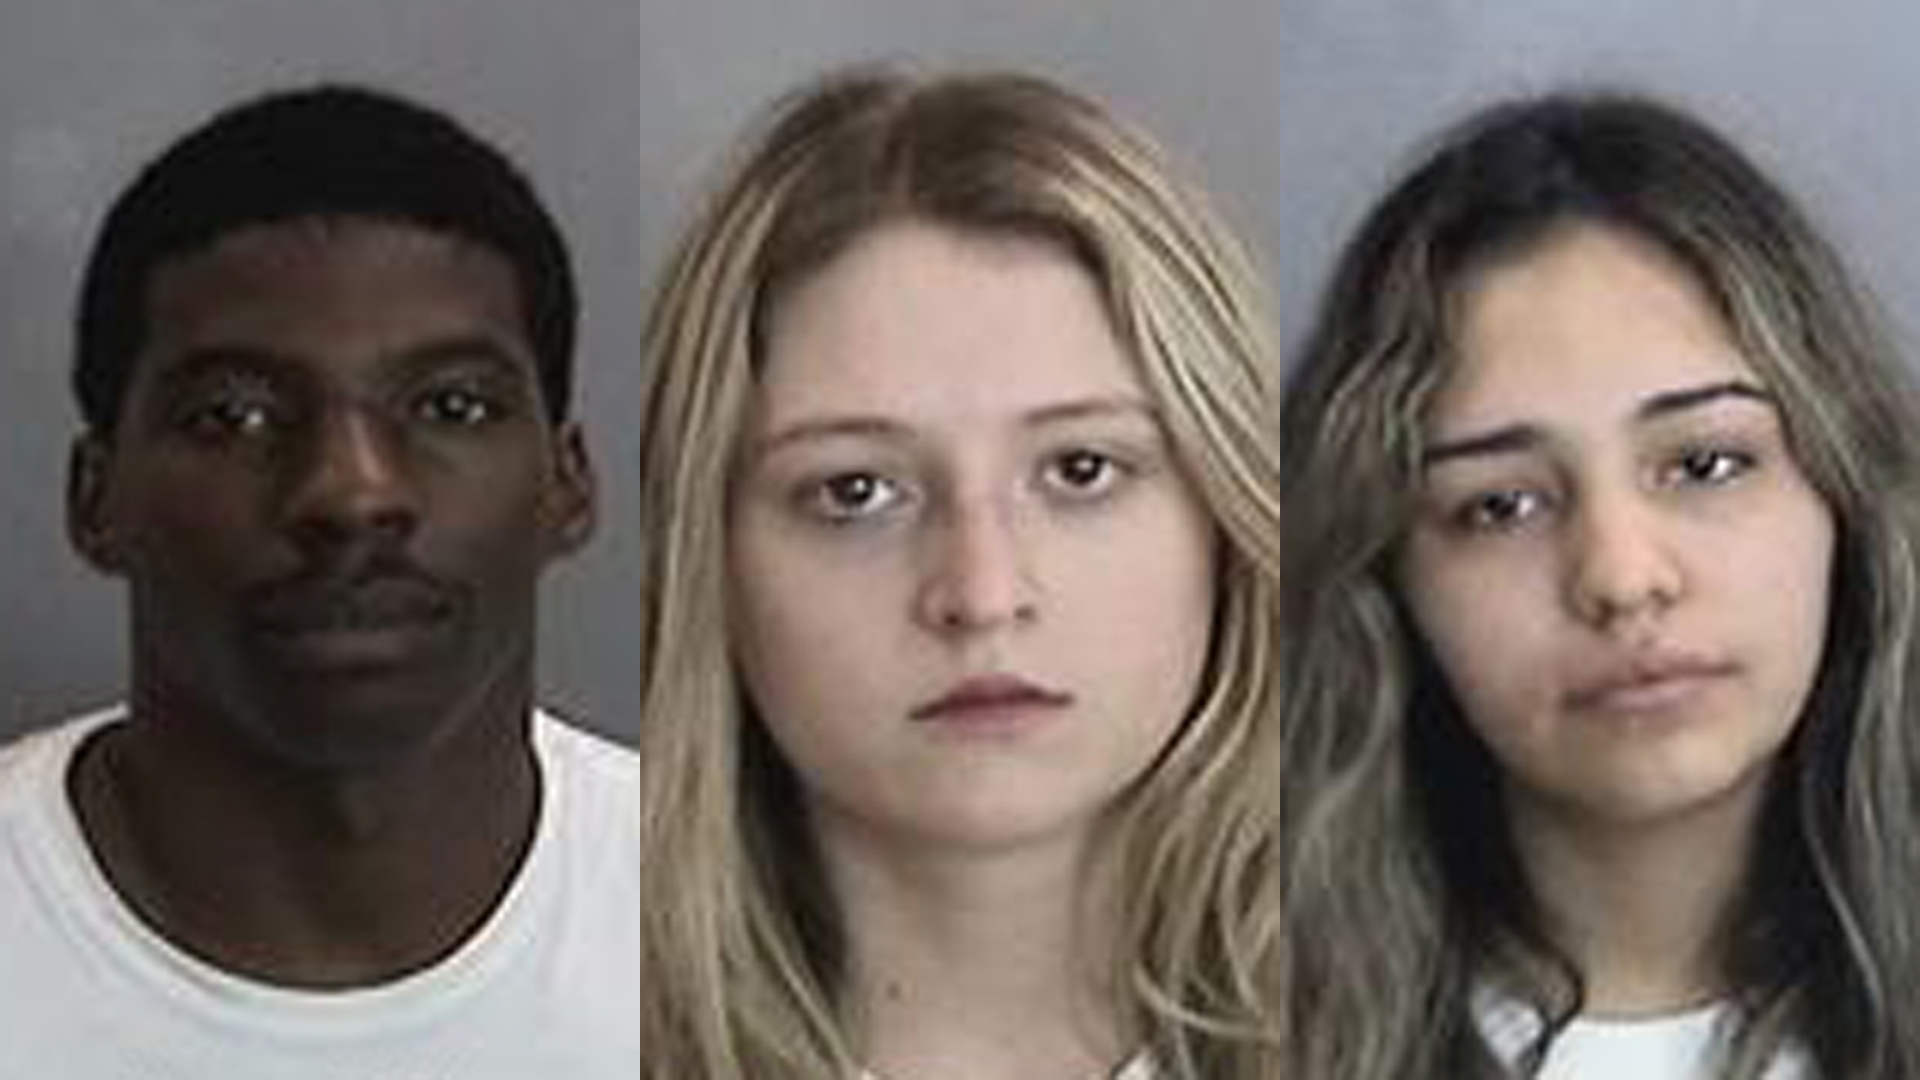 (from left to right) Kendell Morris, Kaylyn Melendez and Carelli Barajas are seen in booking photos released by Anaheim police on Dec. 24, 2019.